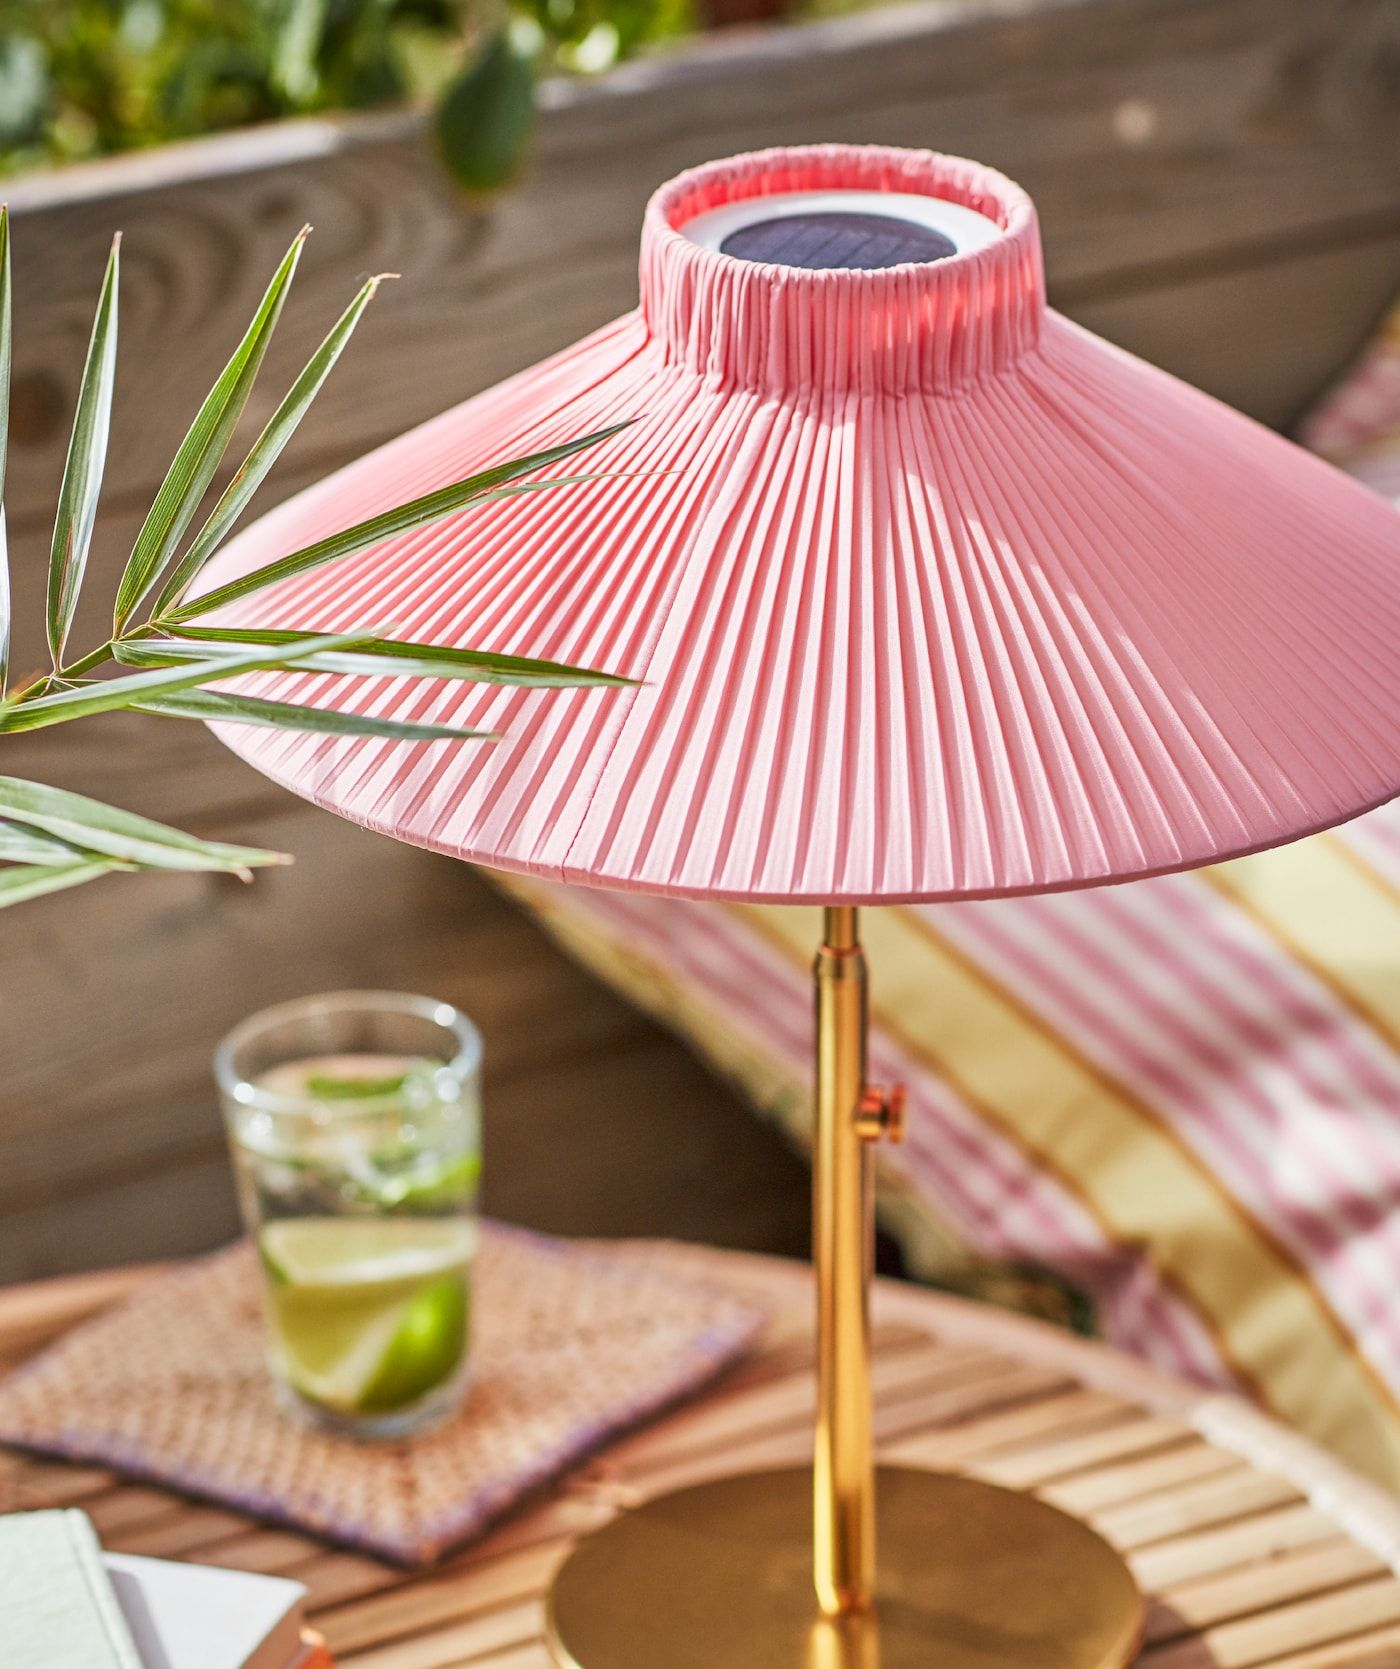 Light Your Summer Evenings With Solar Powered Lamps In 2020 Solar Powered Lamp Table Lamp Lamp